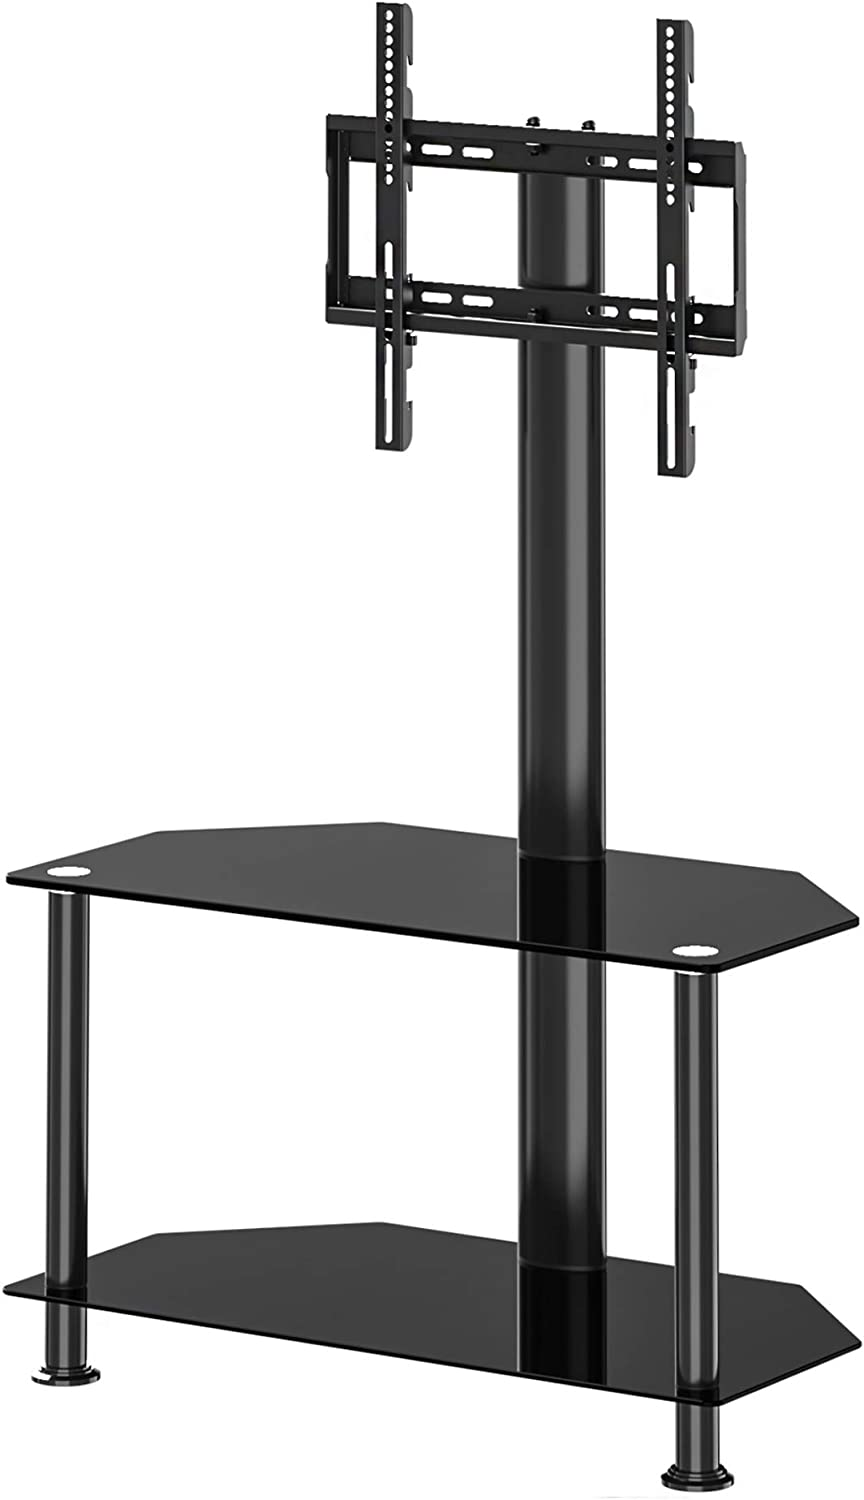 FITUEYES Floor TV Stand with Swivel Mount and Height Adjustable Flat Curved Screen TV for 32 50 55 inch Vizio Sumsung Sony Tvs Max VESA 400x400 FTW207502MB